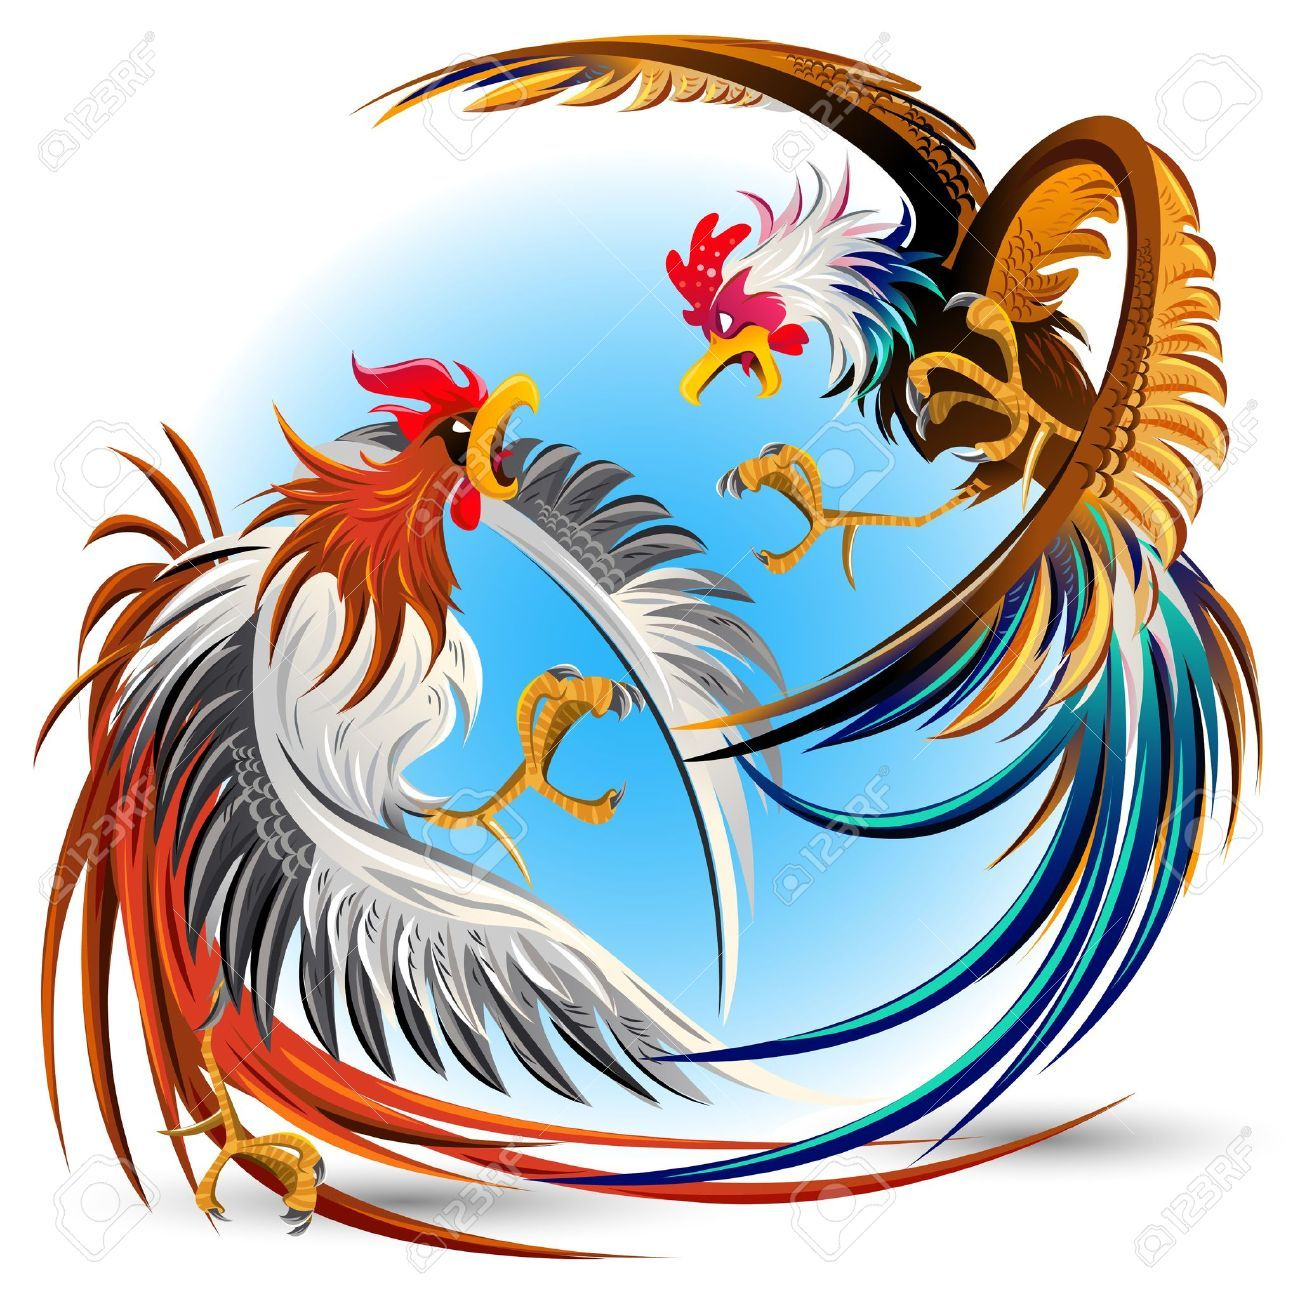 Asian fighting rooster art Google Search Rooster art